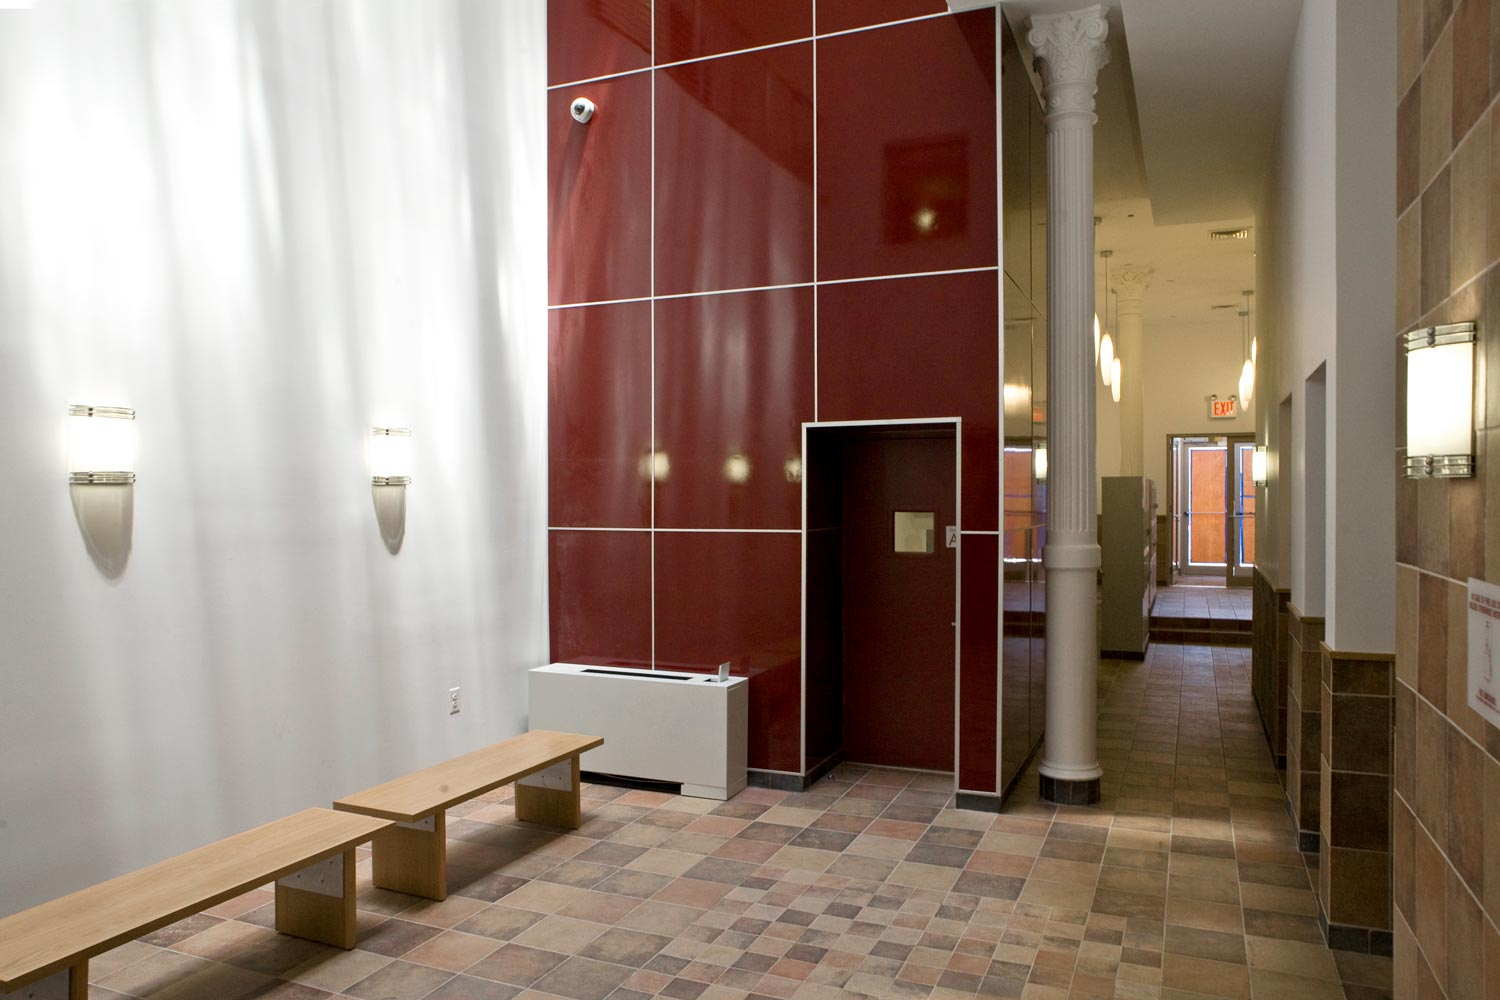 A skylight brings natural light down into the otherwise dark central elevator lobby.